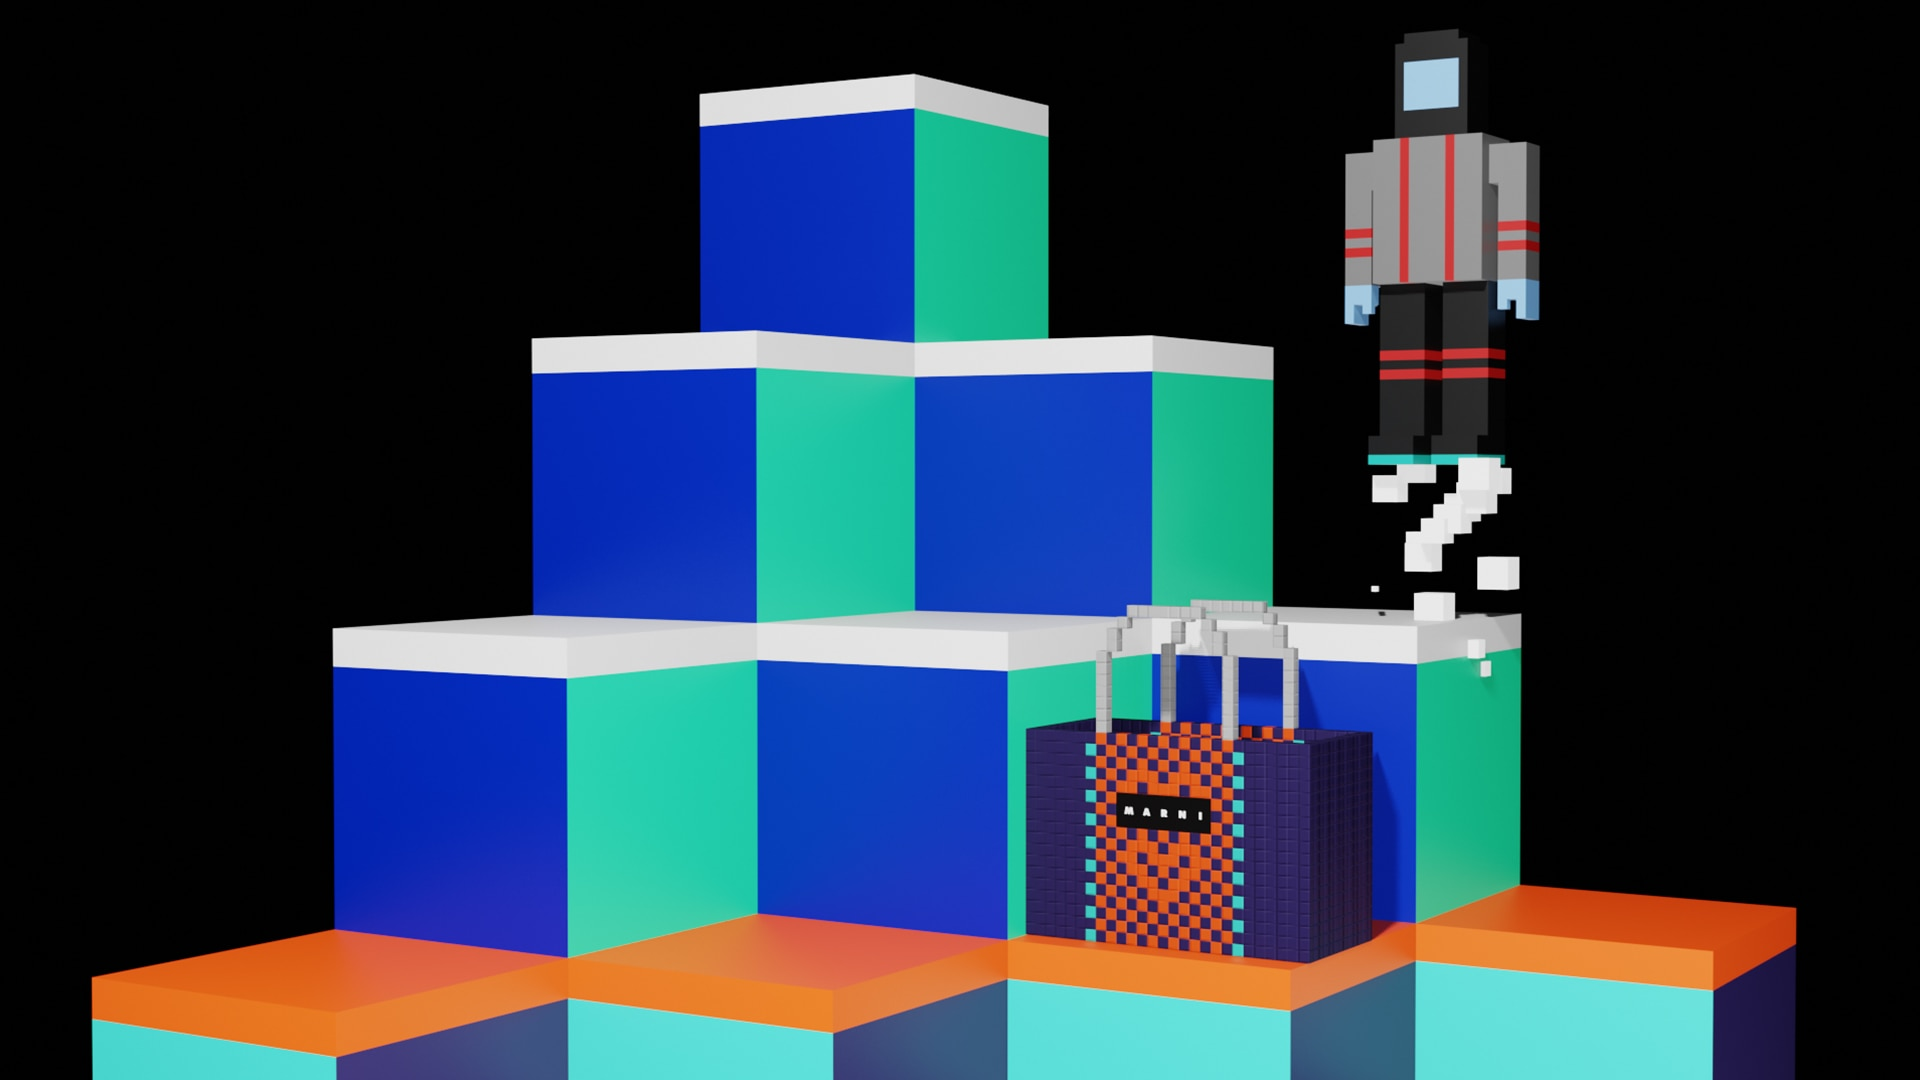 basket bag and colourful cubes scene from Marni Market special video inspired by '80 videogames